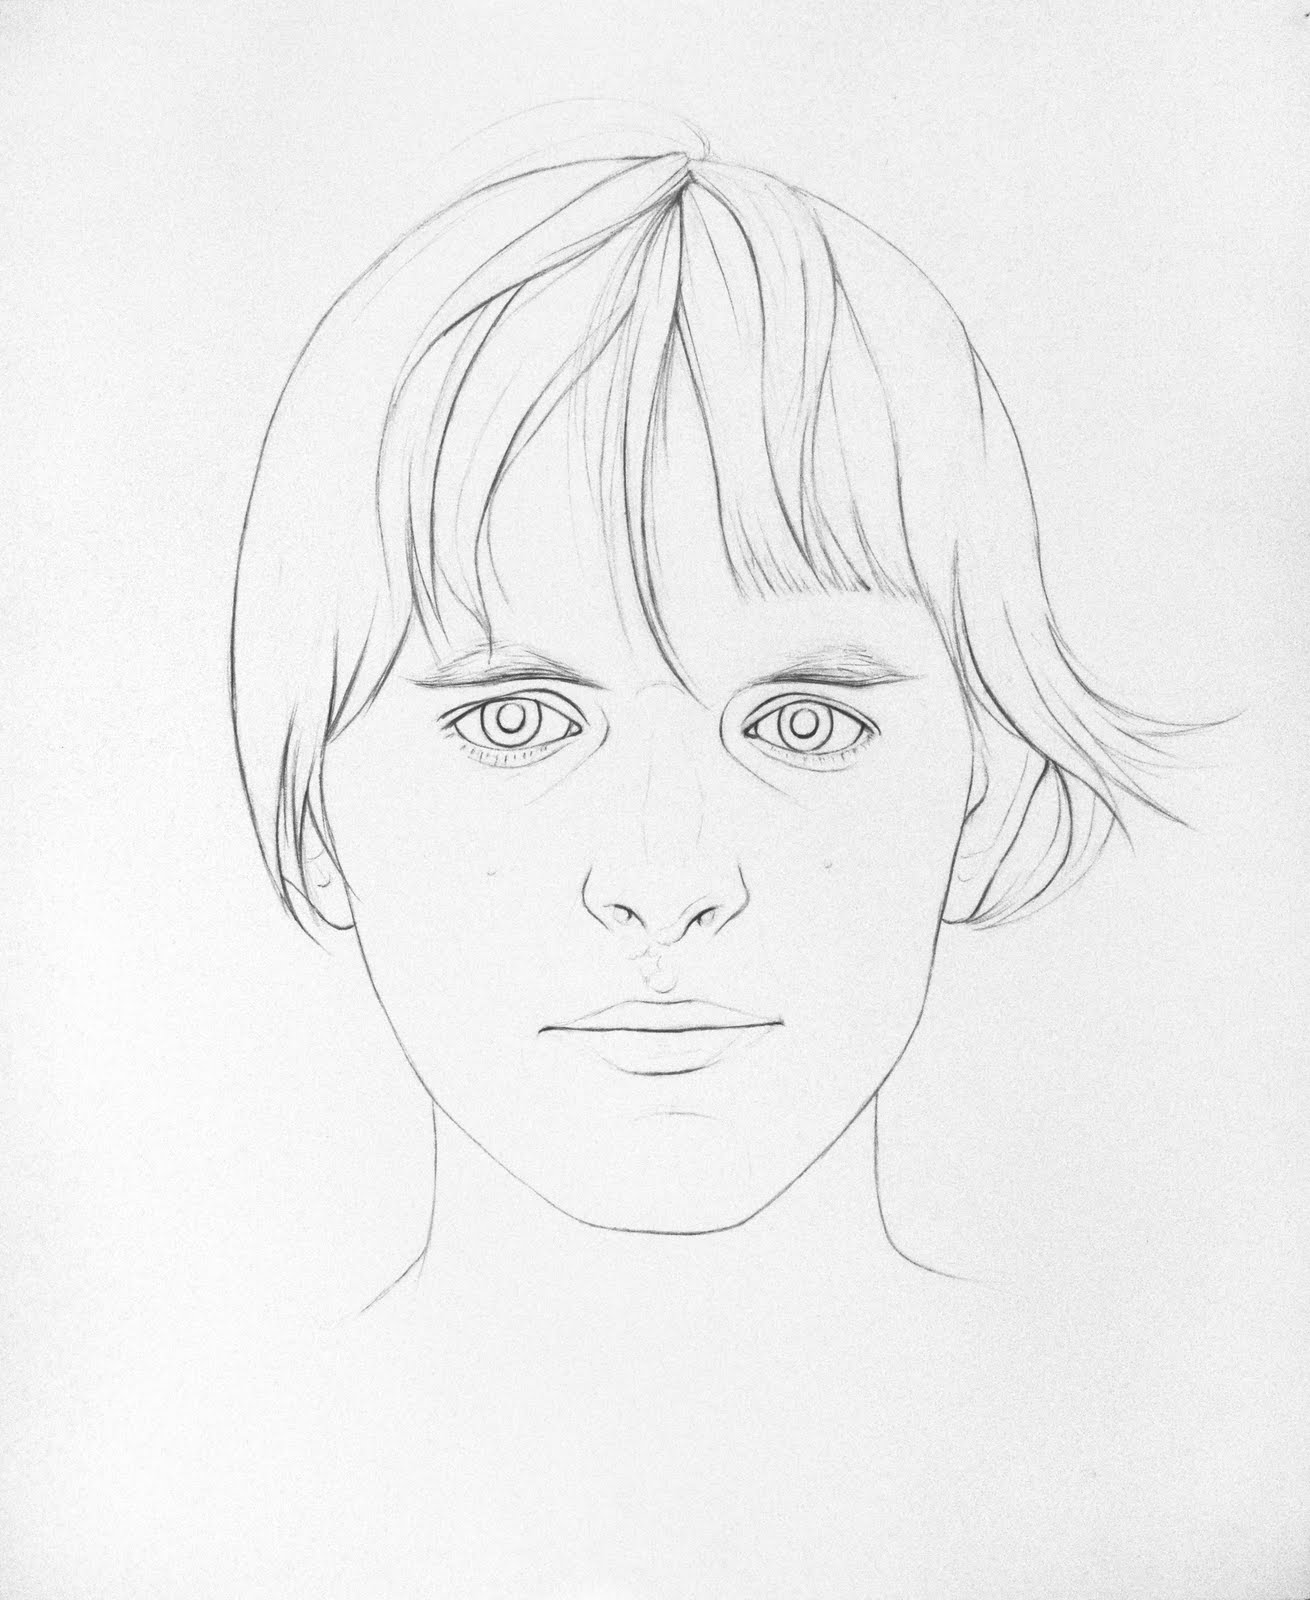 Line Drawing Of Face : Obsessive thoughts work the face